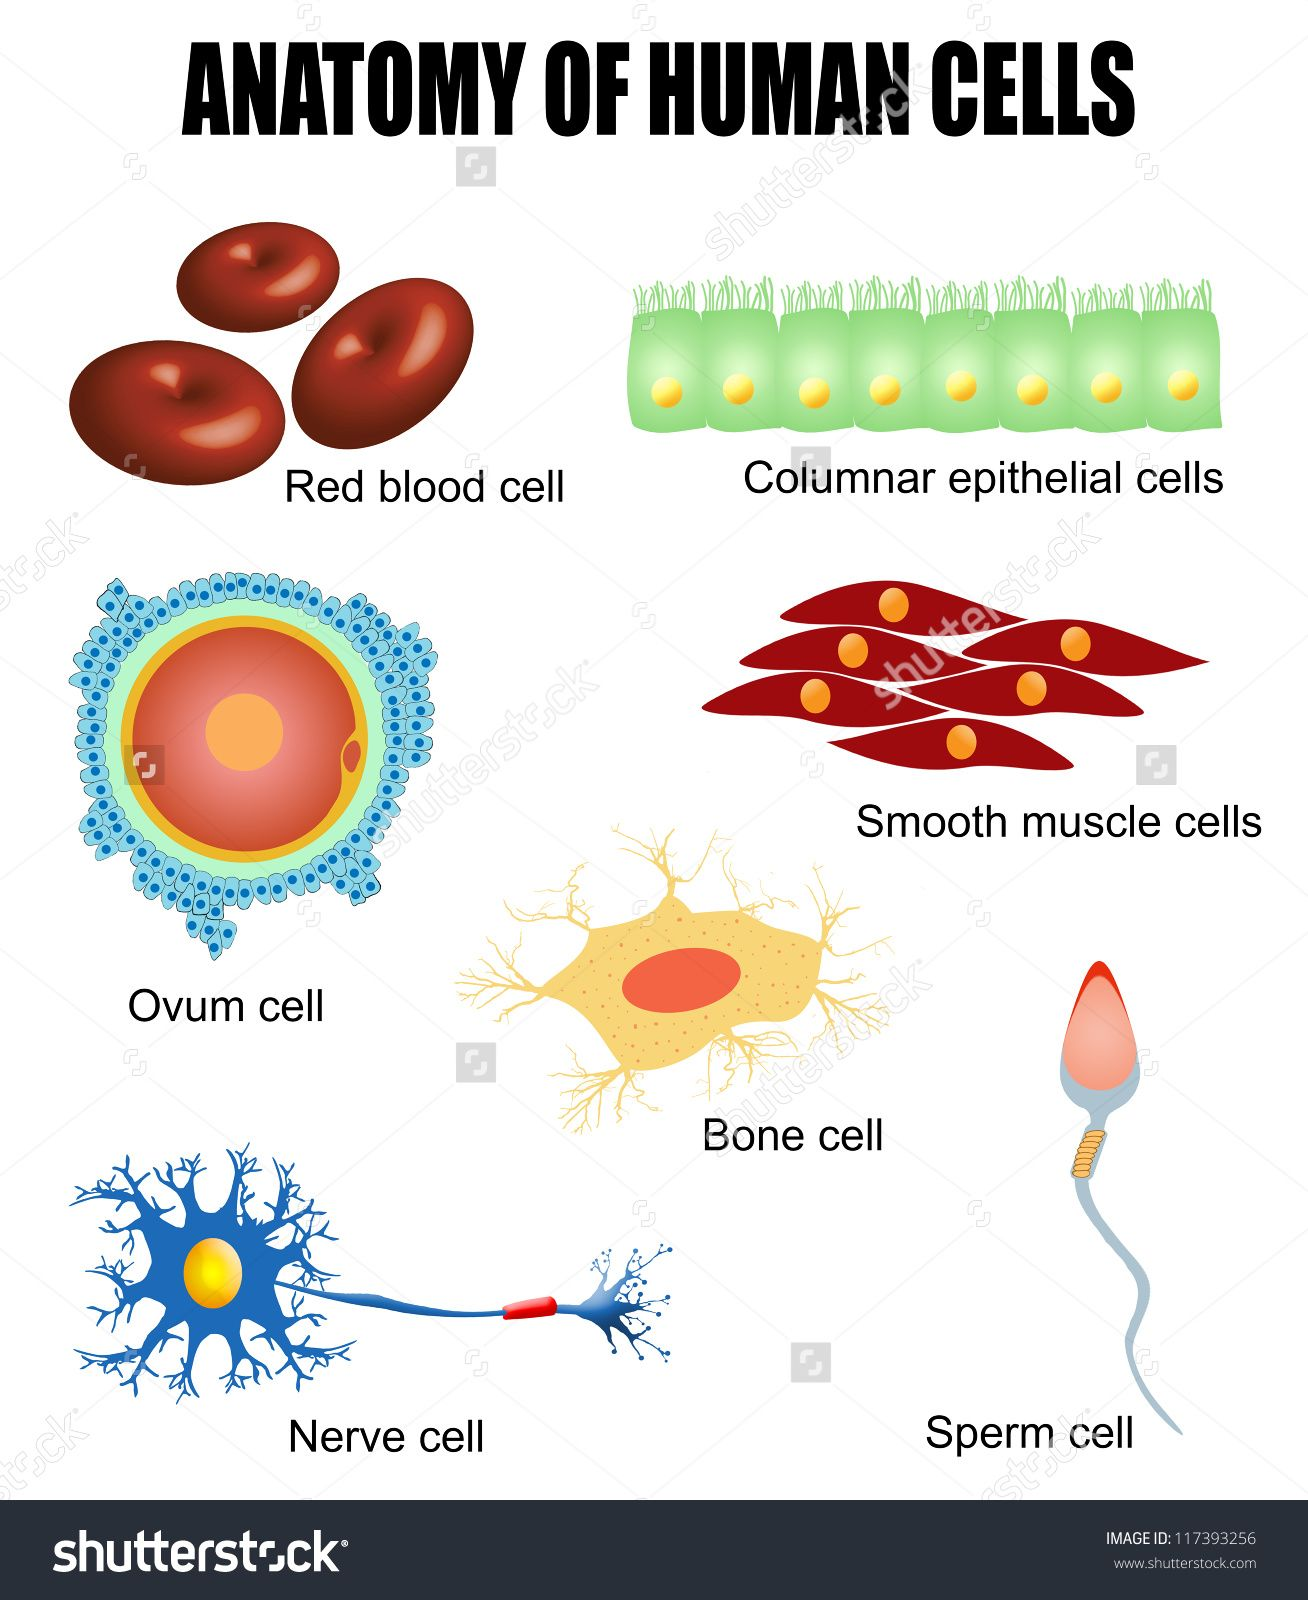 anatomy of human cells useful for education in schools and clinics vector illustration [ 1308 x 1600 Pixel ]